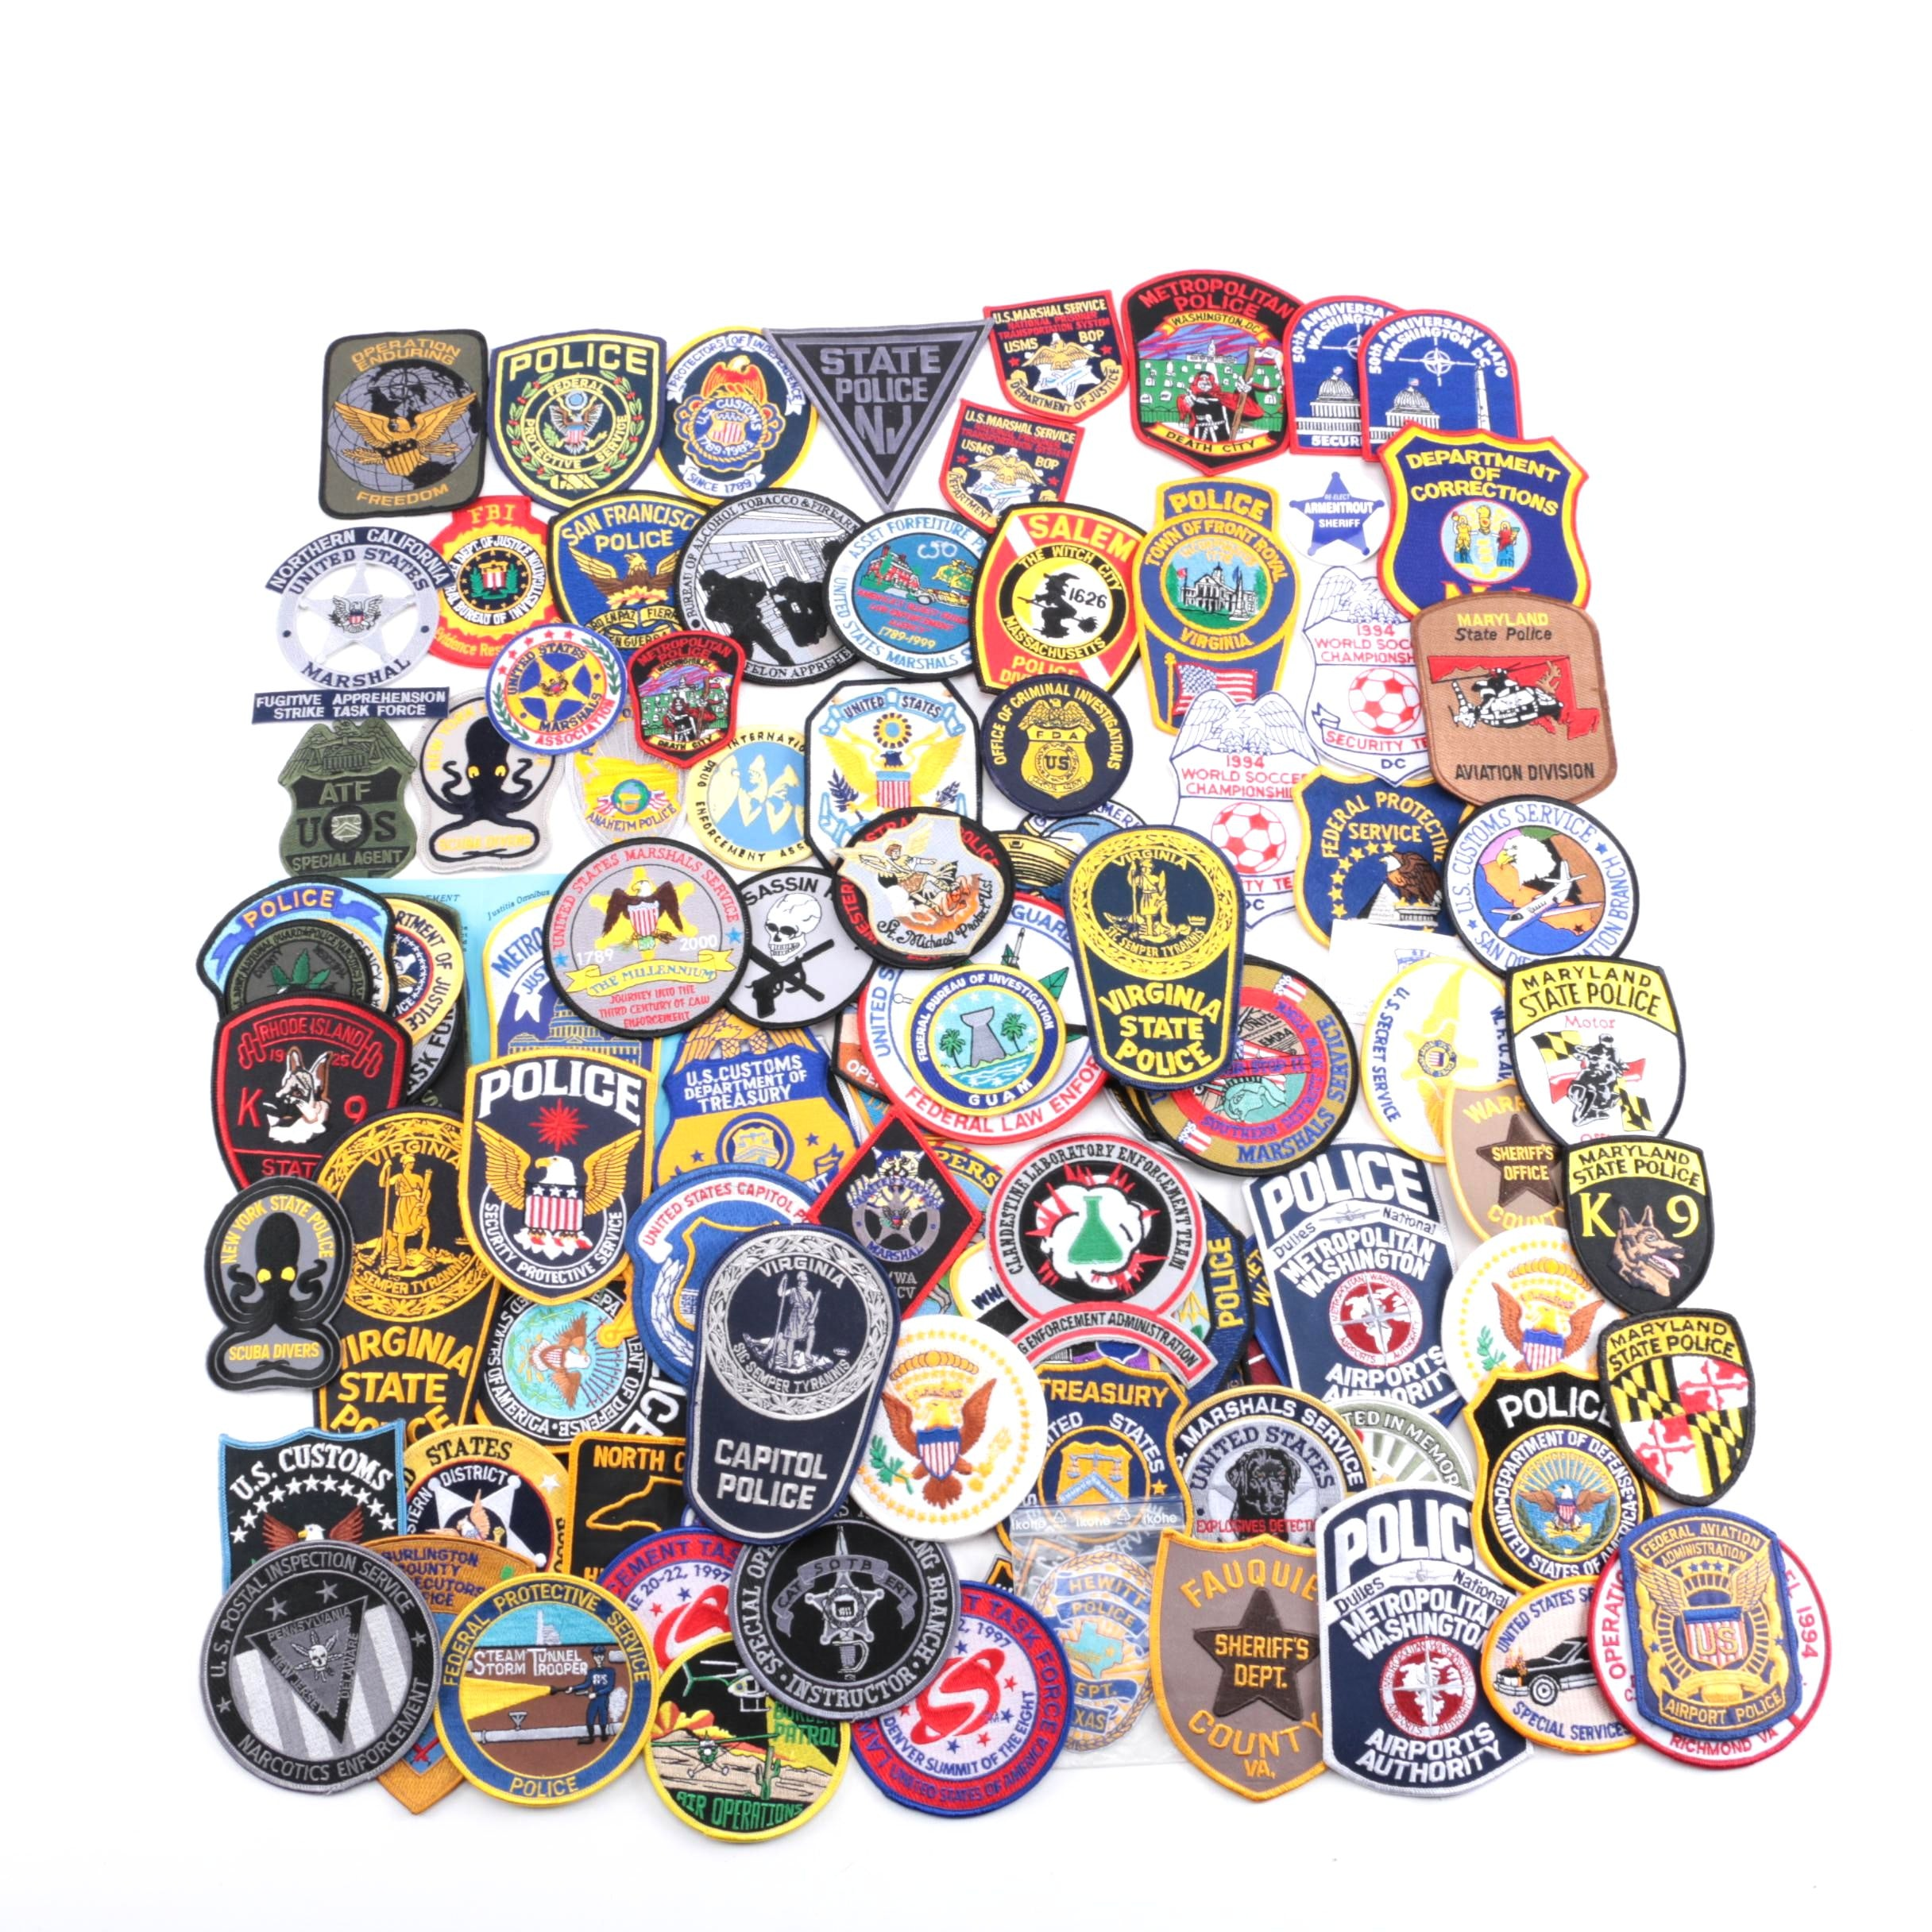 Collection of Civil Service Patches